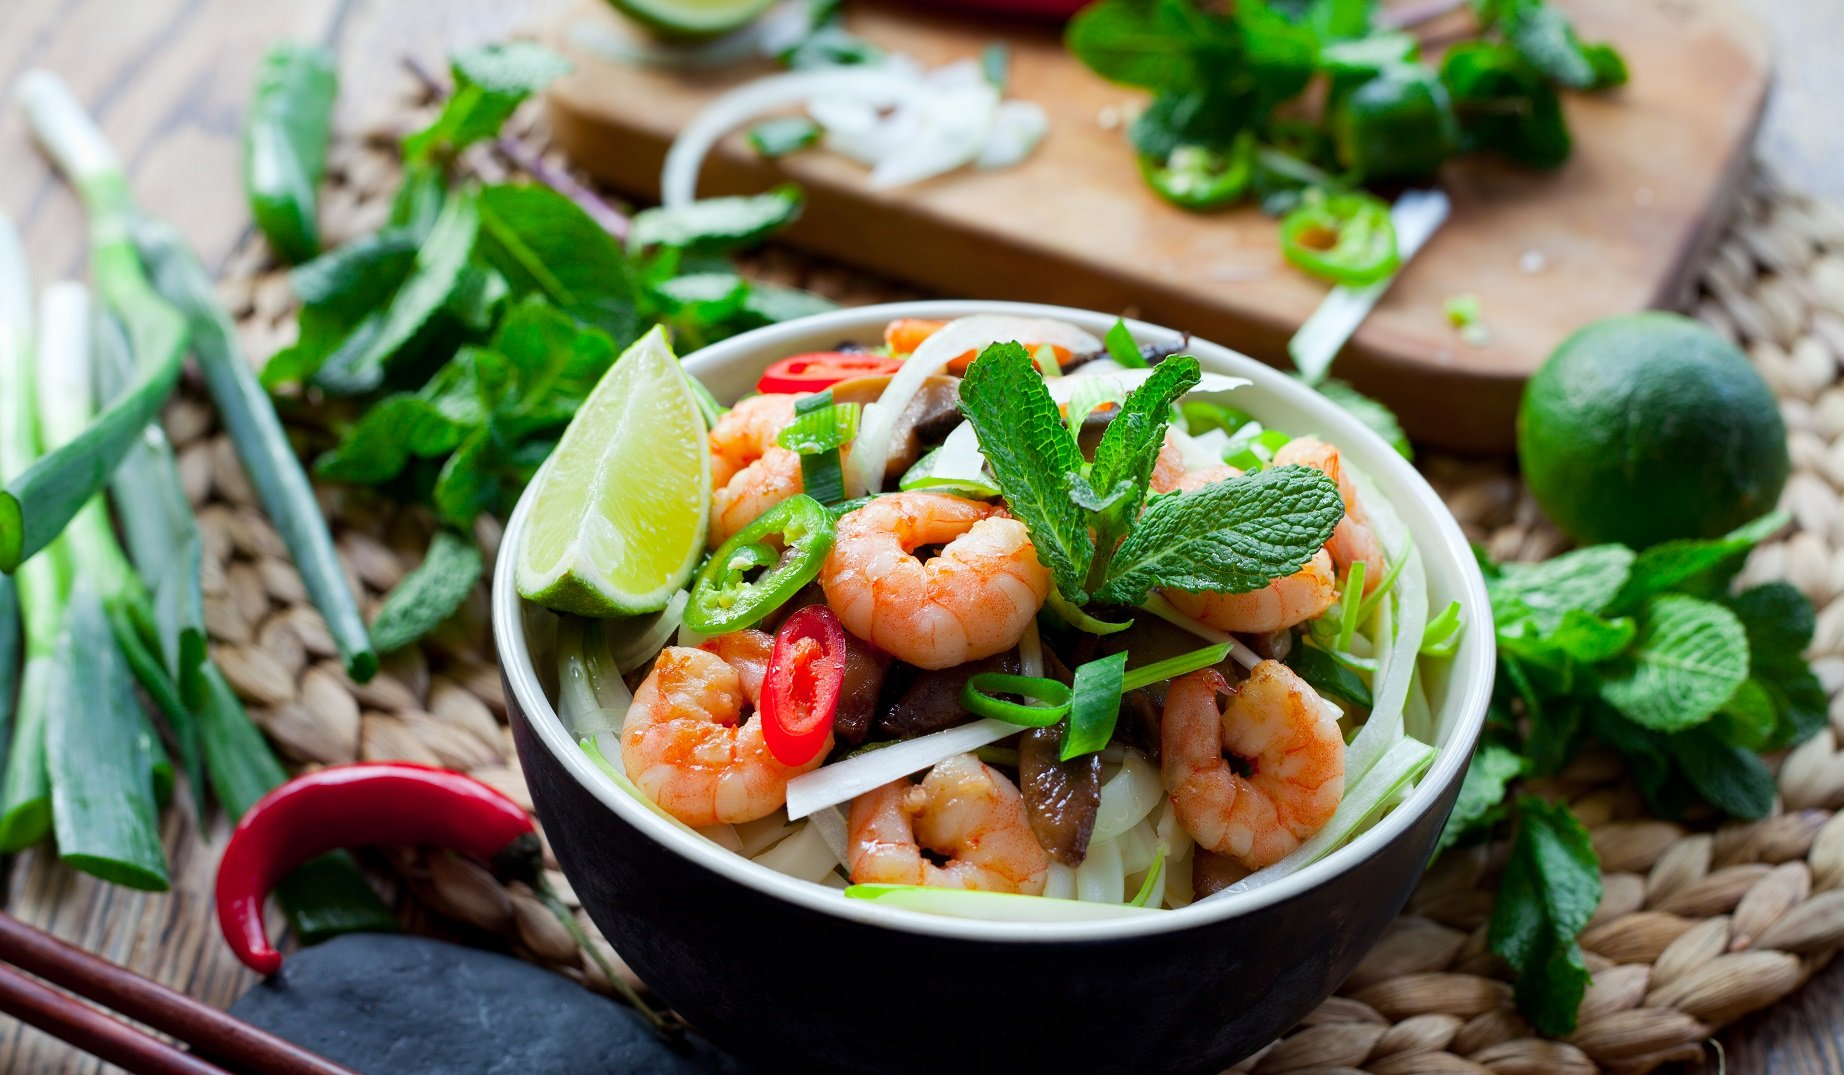 Pan-fried Prawn And Pineapple Salad With A Lime Dressing photo